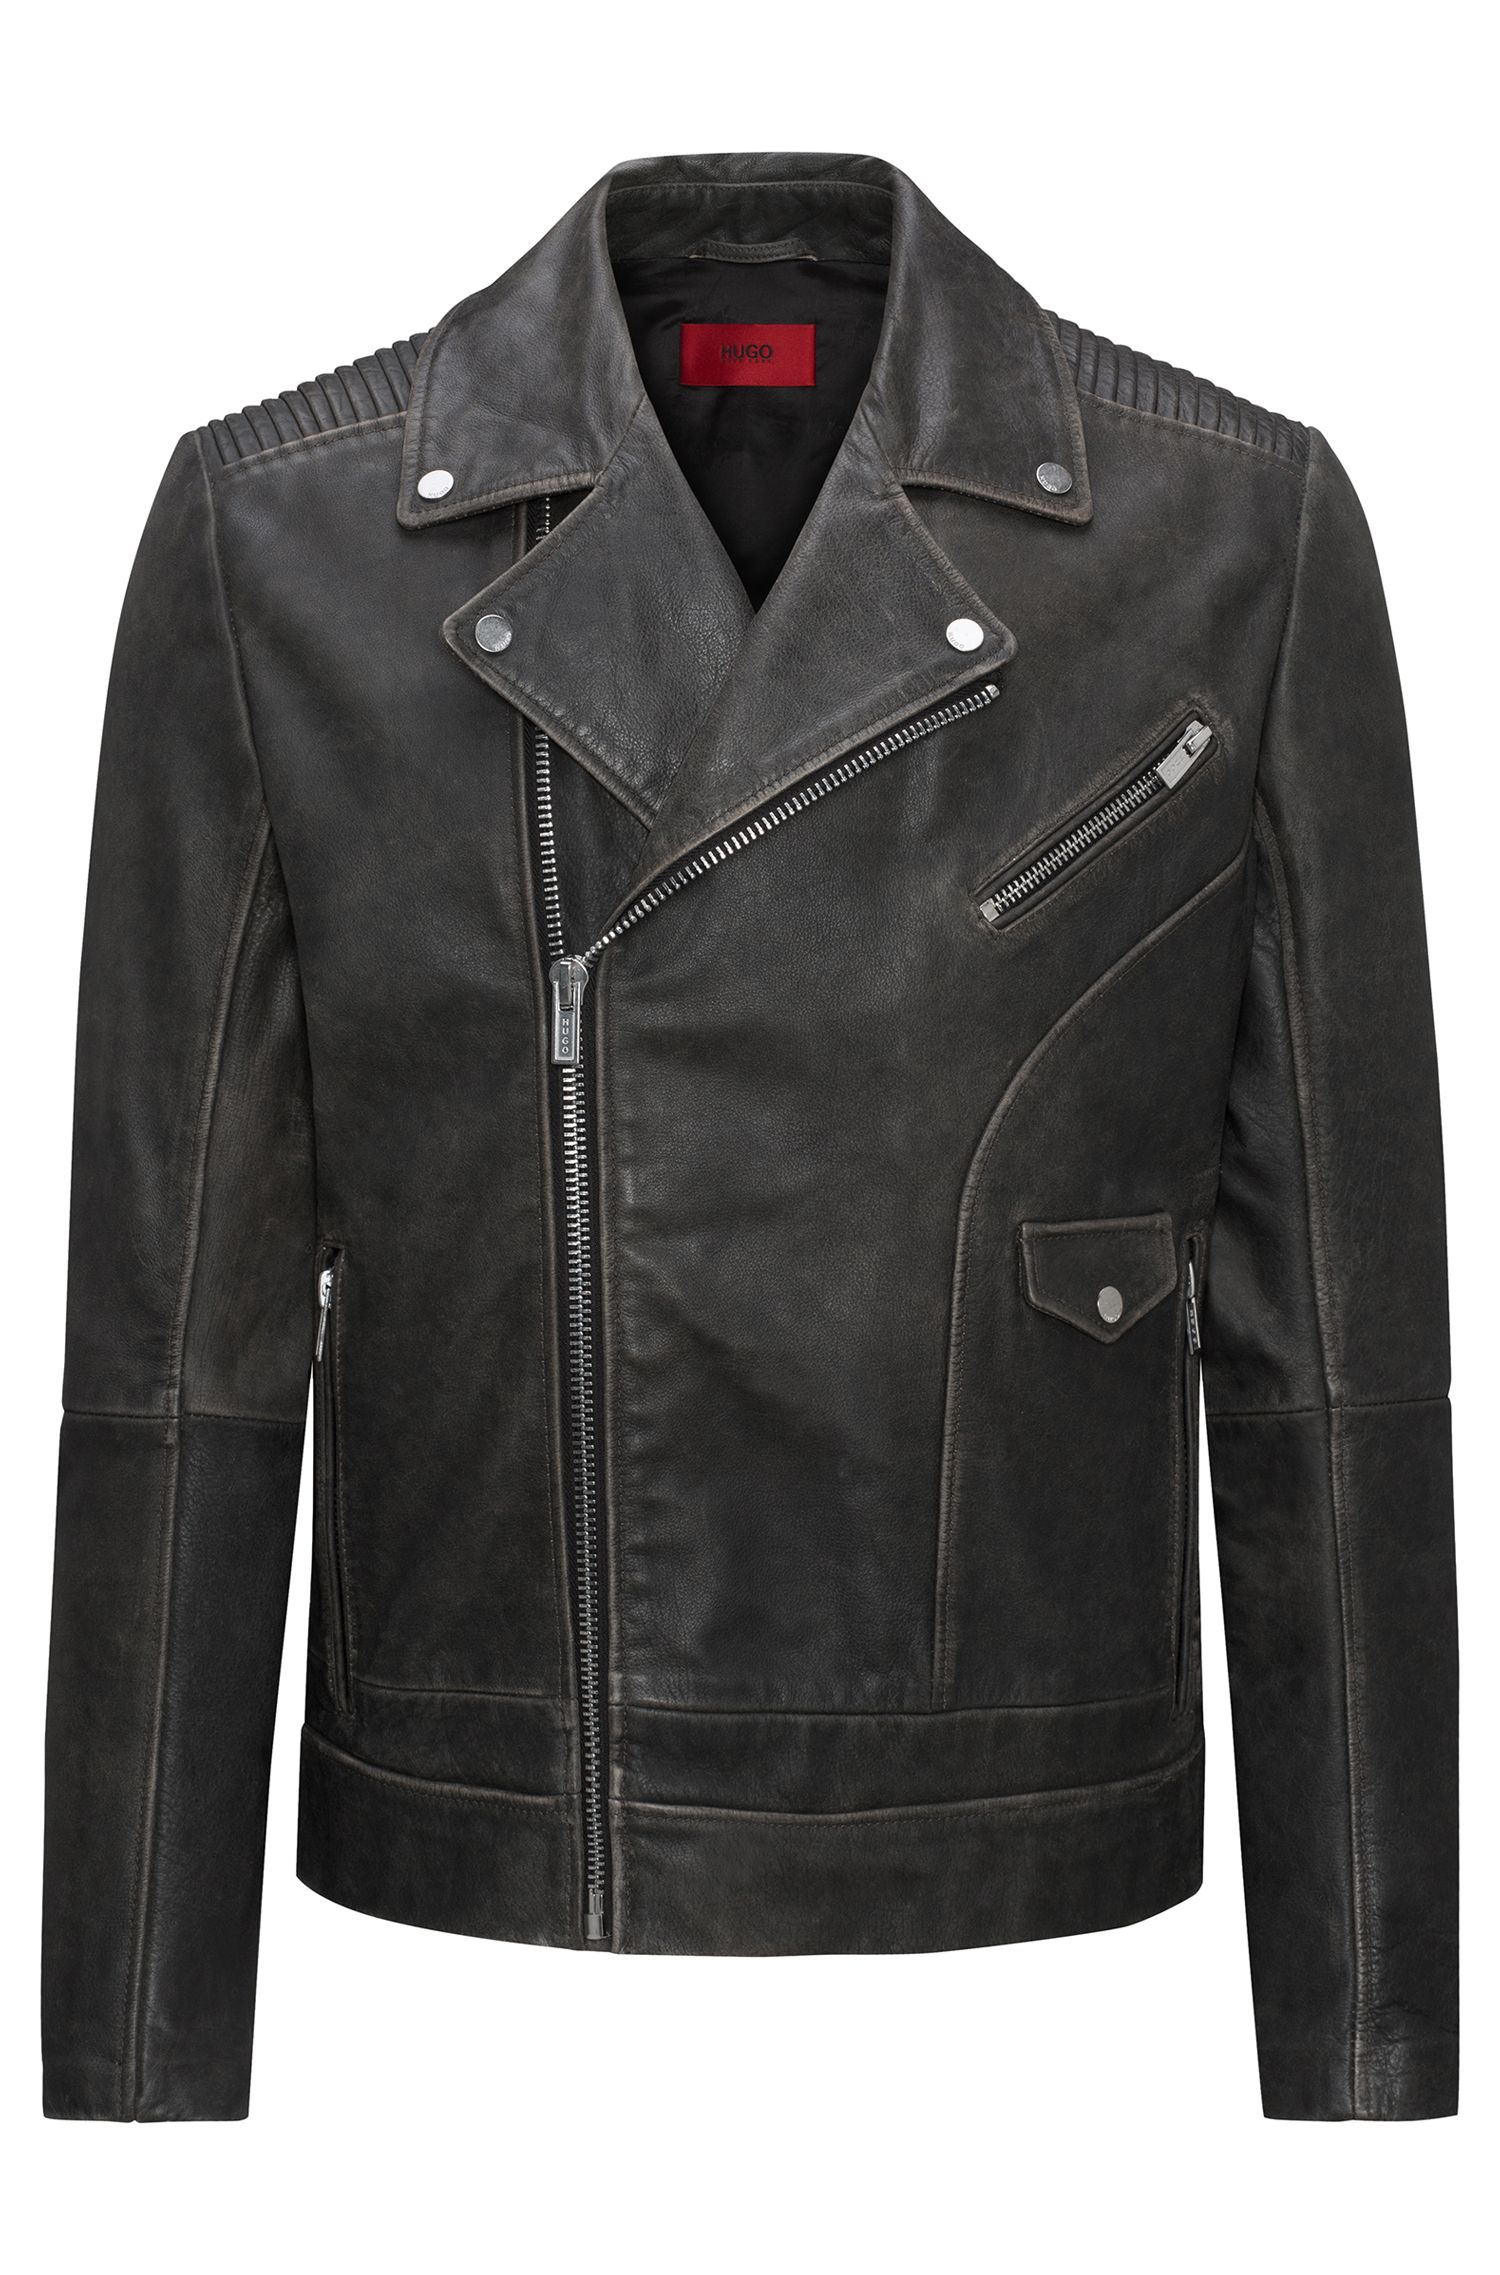 Giubbotto biker relaxed fit in pelle di vitello nappa